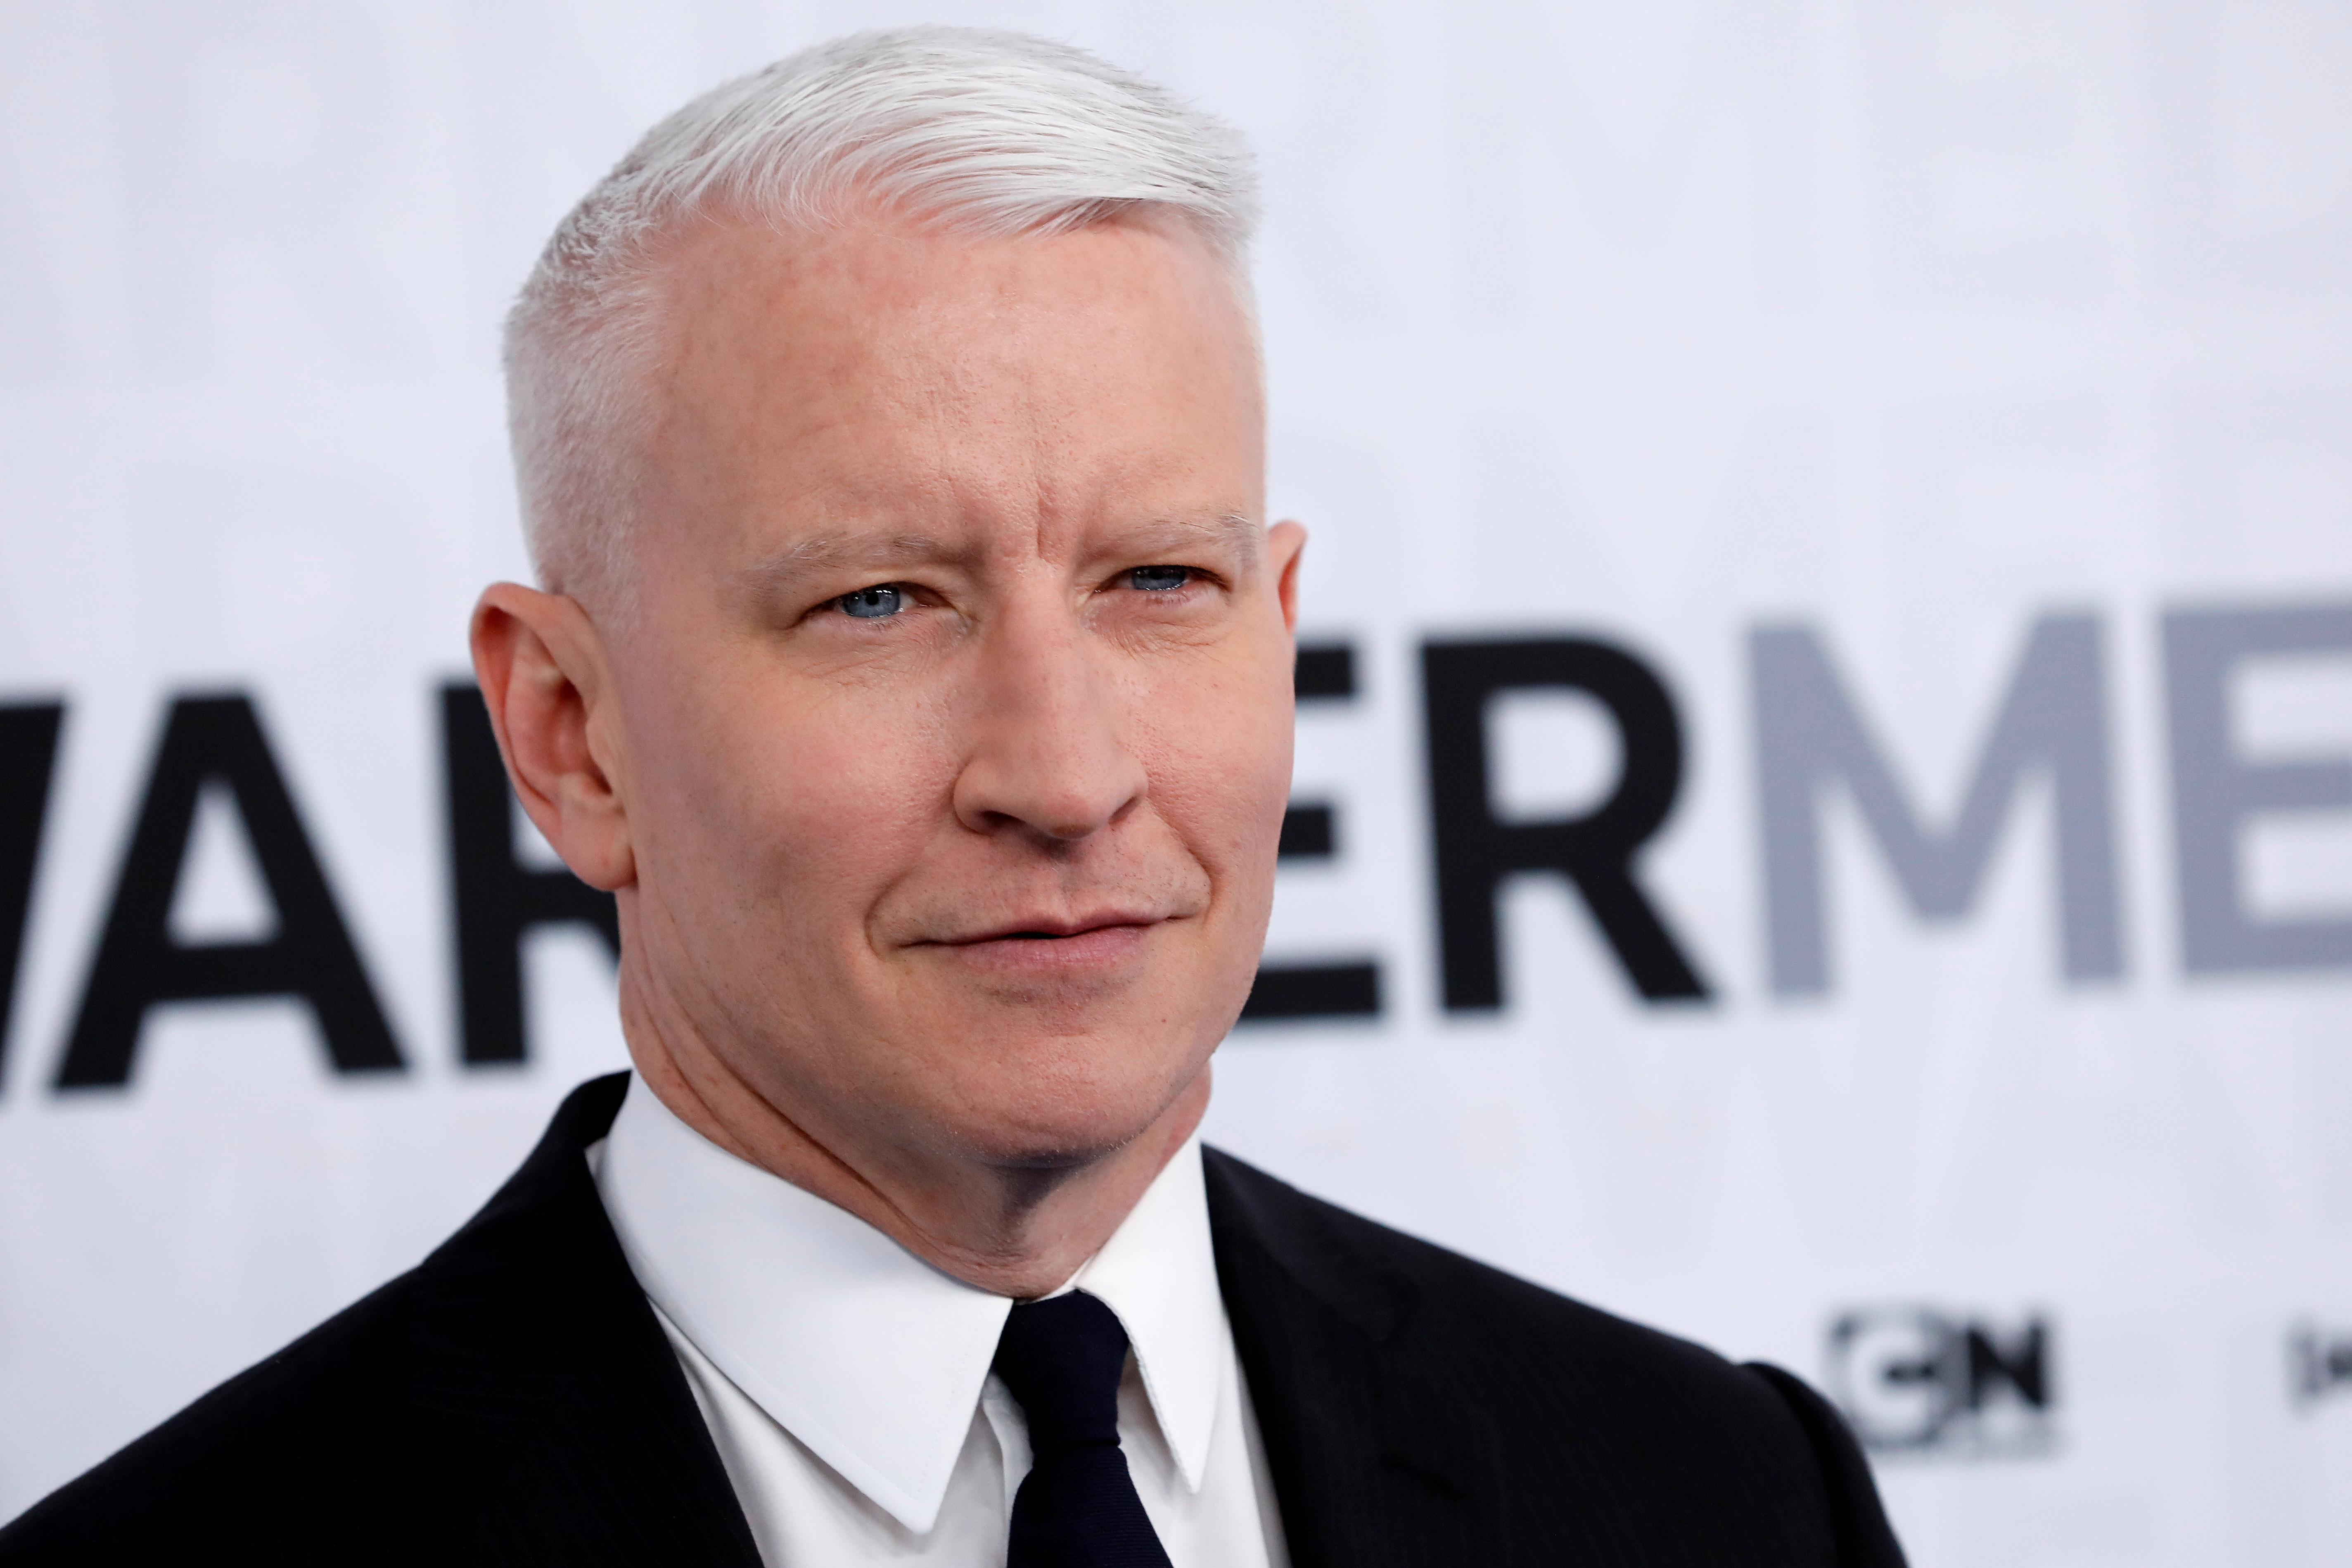 Anderson Cooper regrets 'obese turtle' remark toward President Trump: 'It was in the heat of the moment'